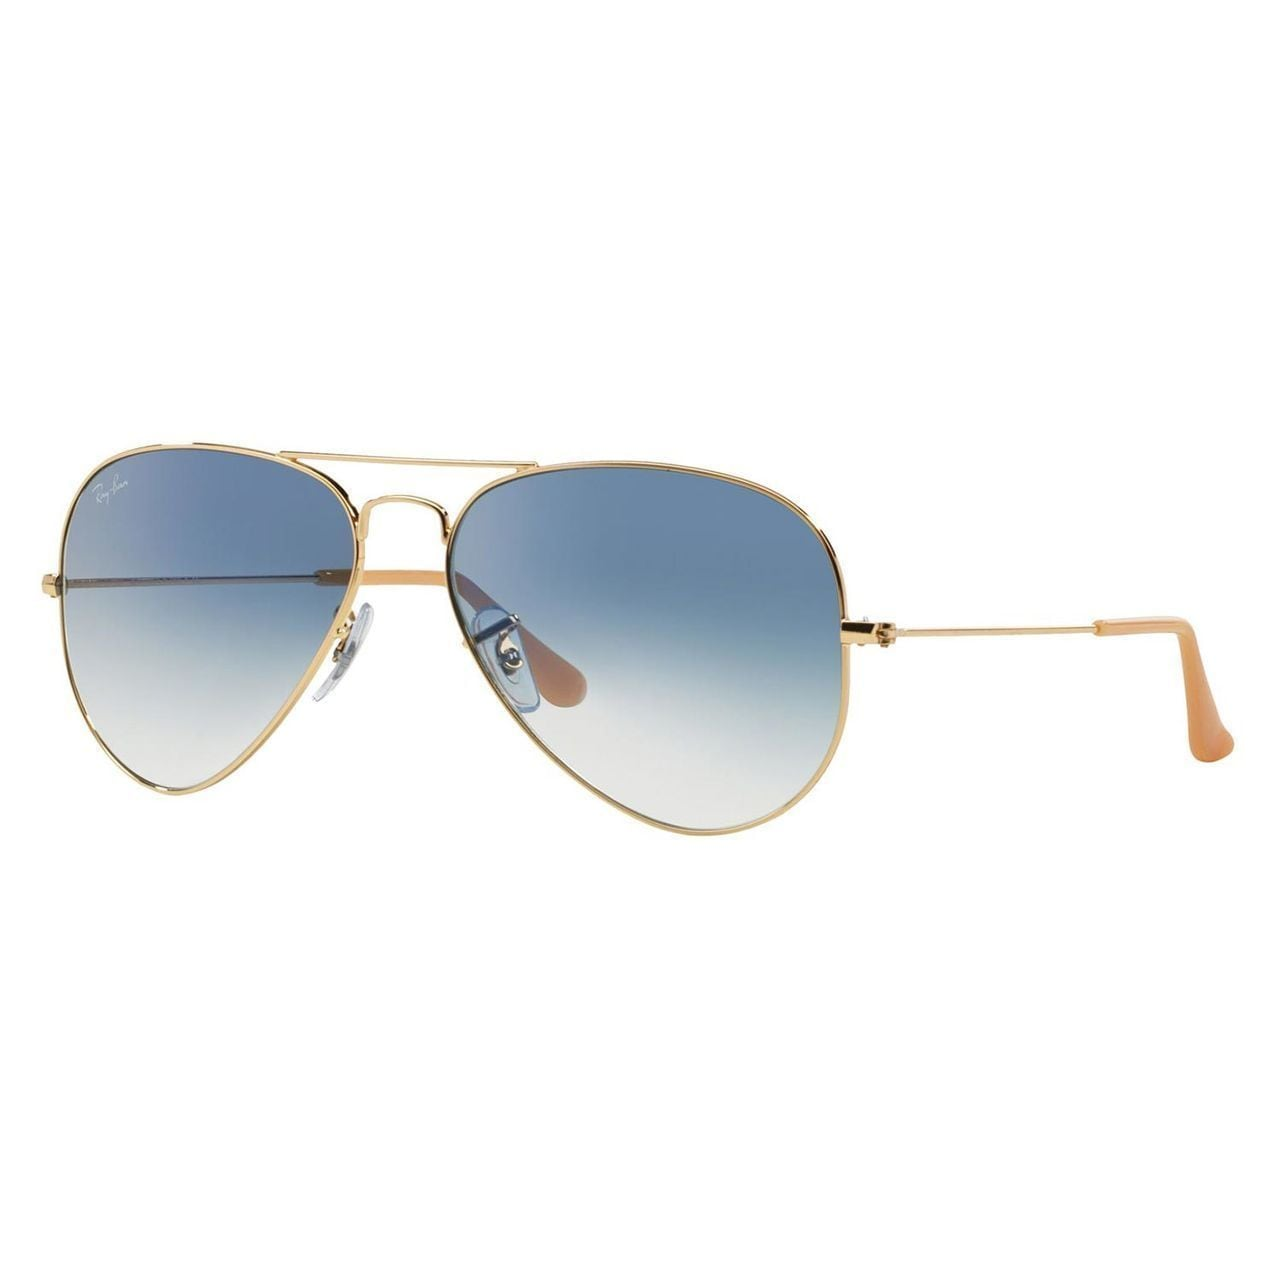 b1246315e923 Shop Ray-Ban Aviator RB 3025 Unisex Gold Frame Light Blue Gradient Lens  Sunglasses - Free Shipping Today - Overstock - 10373781